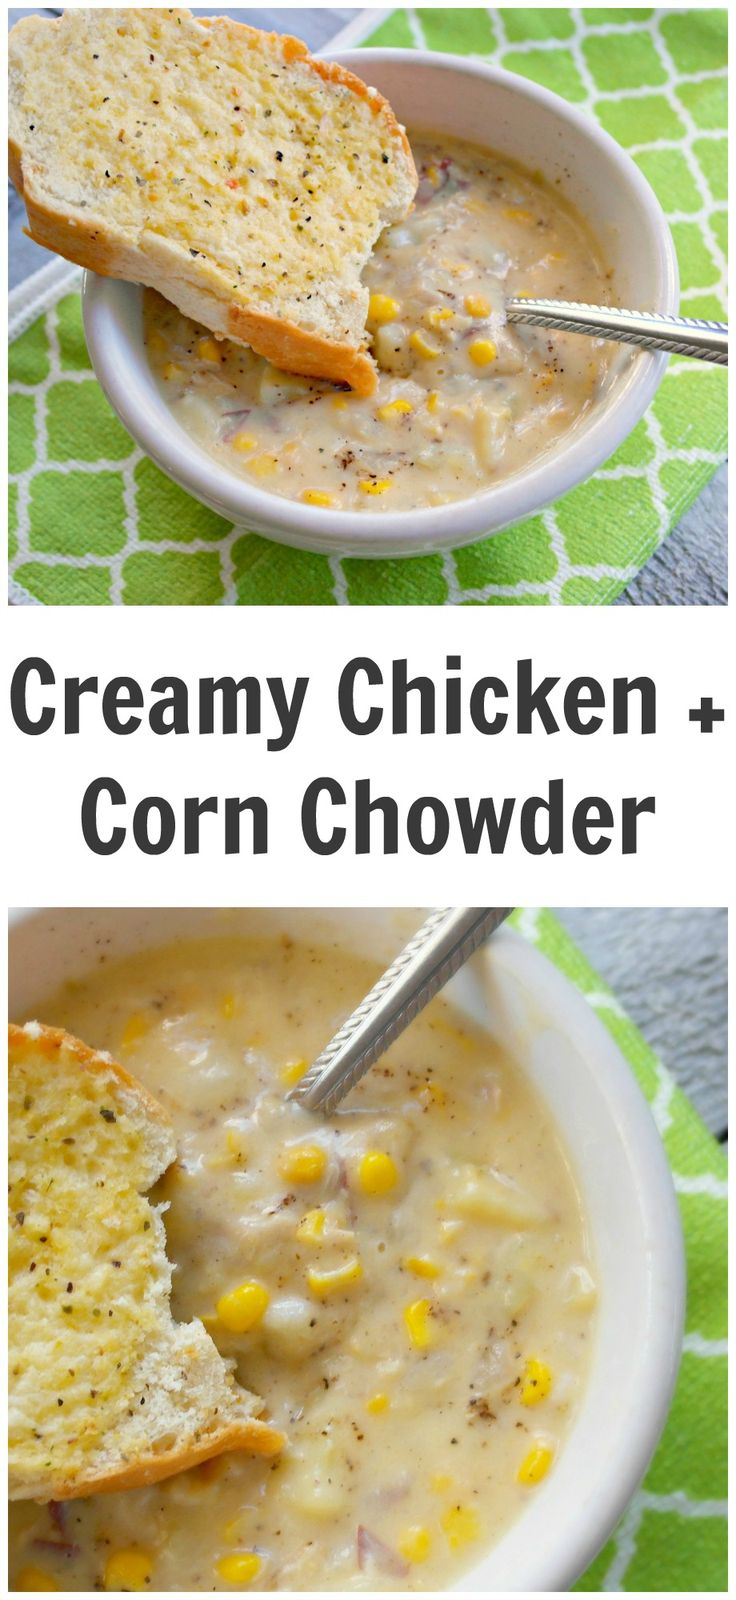 THE BEST ONE YET ~ Just like WAWA's! Easy Creamy Chicken And Corn Chowder Soup